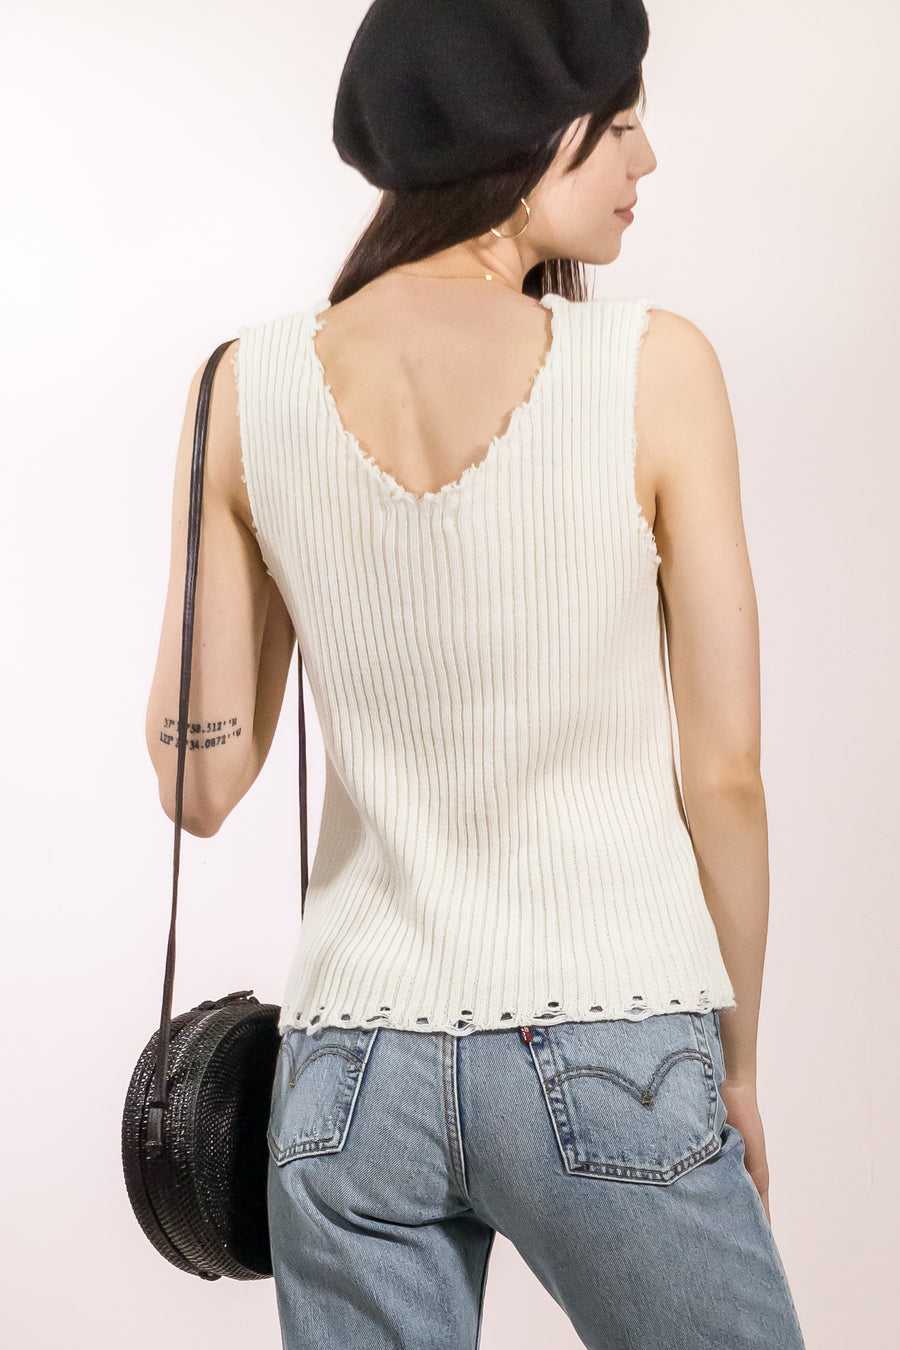 Knit Sleeveless Sweater Top - The Canyon